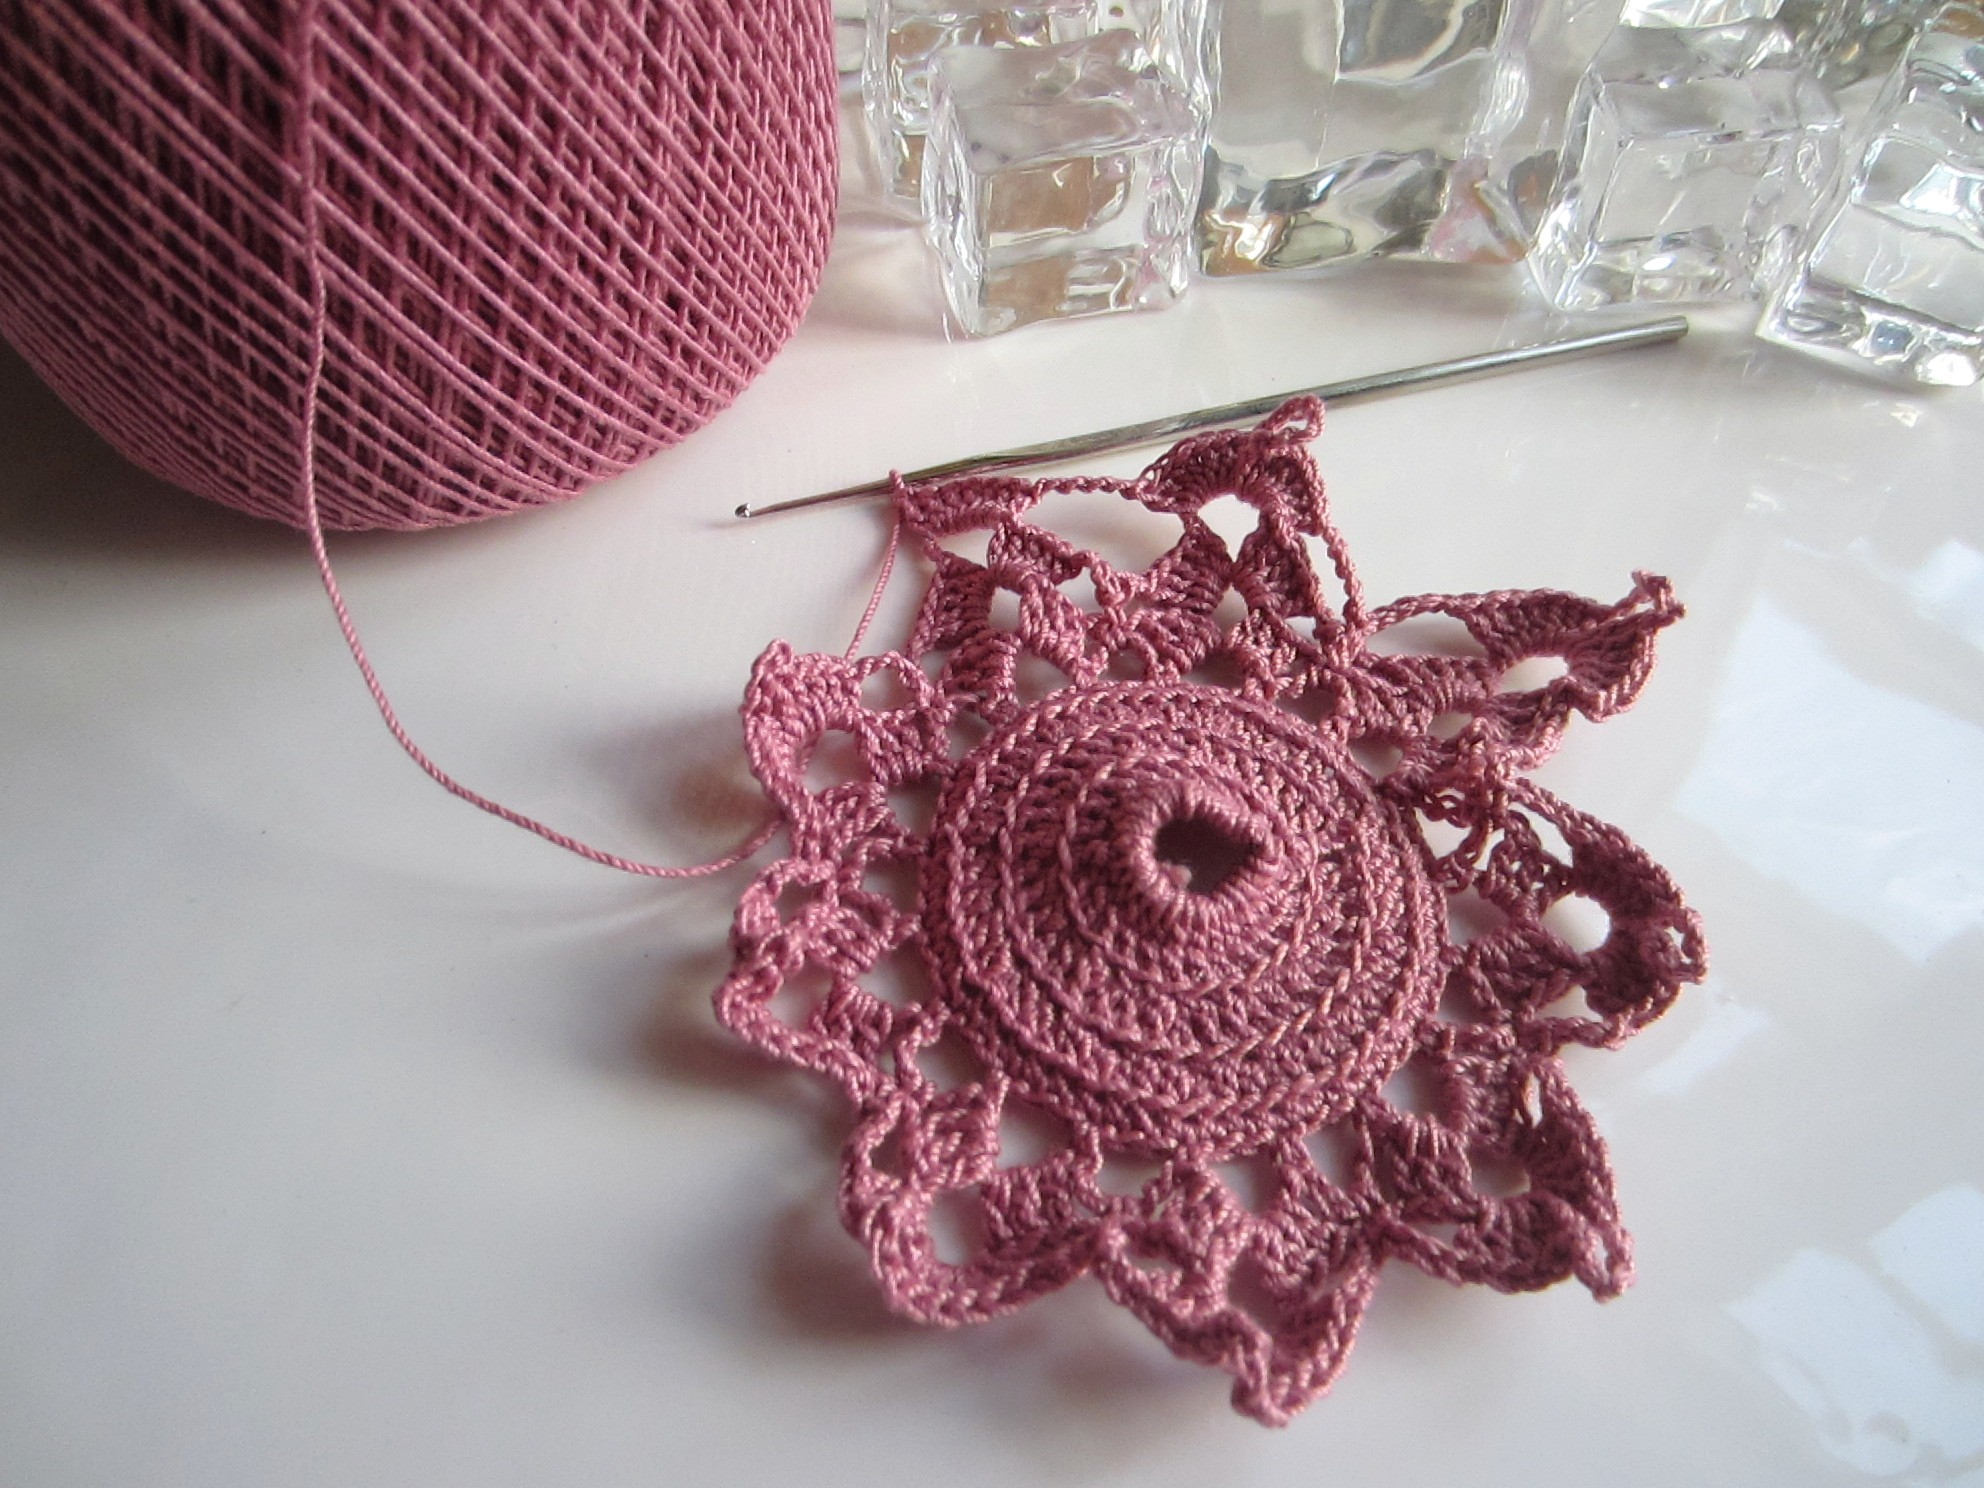 Crochet Ornaments : crochet, Christmas, ornaments, thread 002 G-Ma Ellens Hands ...